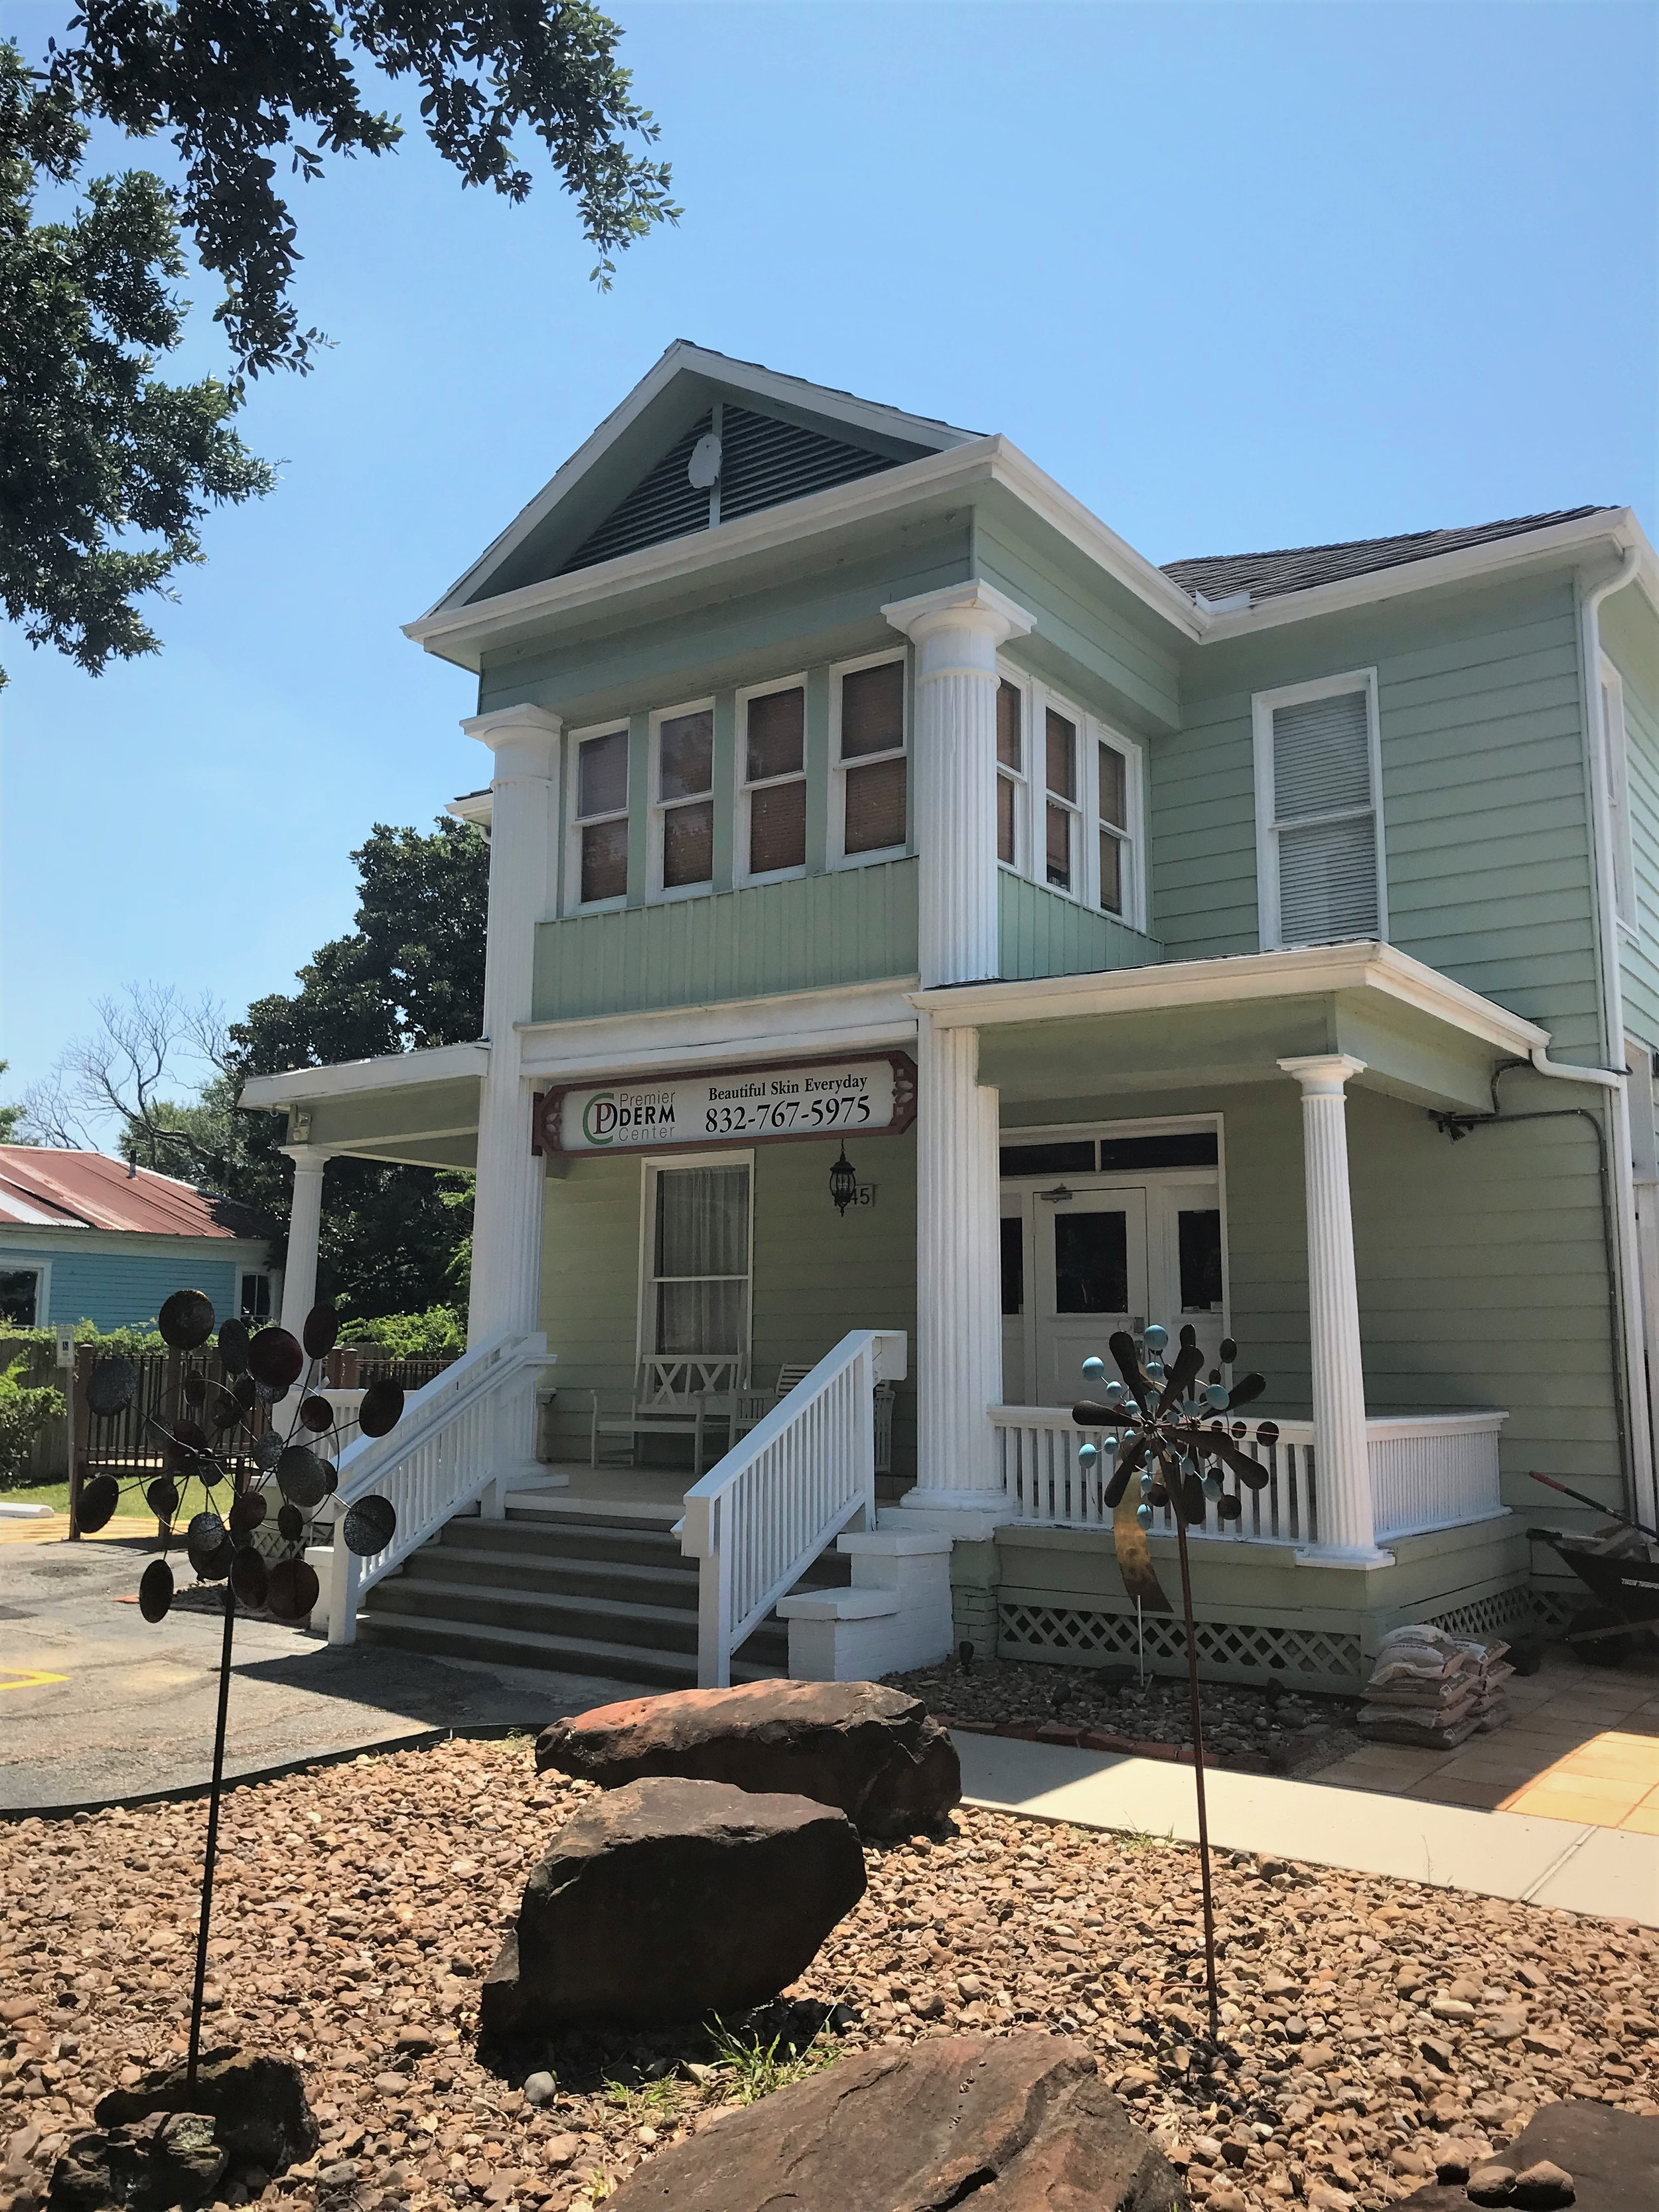 Our Clinic is located in the Historic Houston Heights neighborhood.